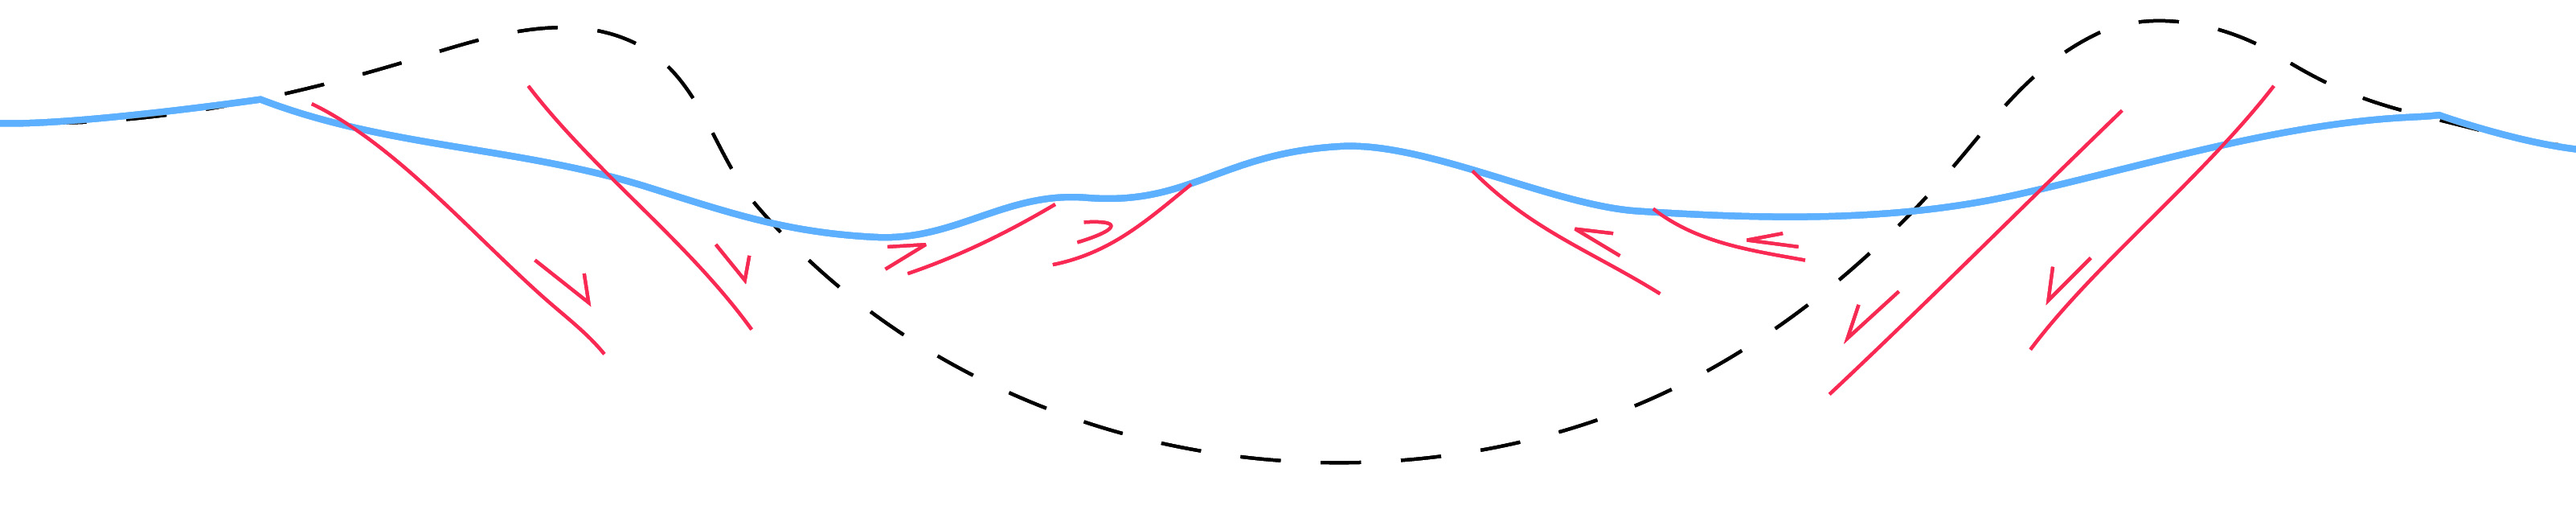 Figure 12: VERY simplified cartoon (not to scale) demonstrating crater collapse with local shortening as material is transported into the bowl. Cartoon adapted from Figure 5c of Melosh (1999). Dashed line is crater rim prior to collapse. Blue line is final geometry of crater. Red lines and accompanying arrows are faults/material motion.